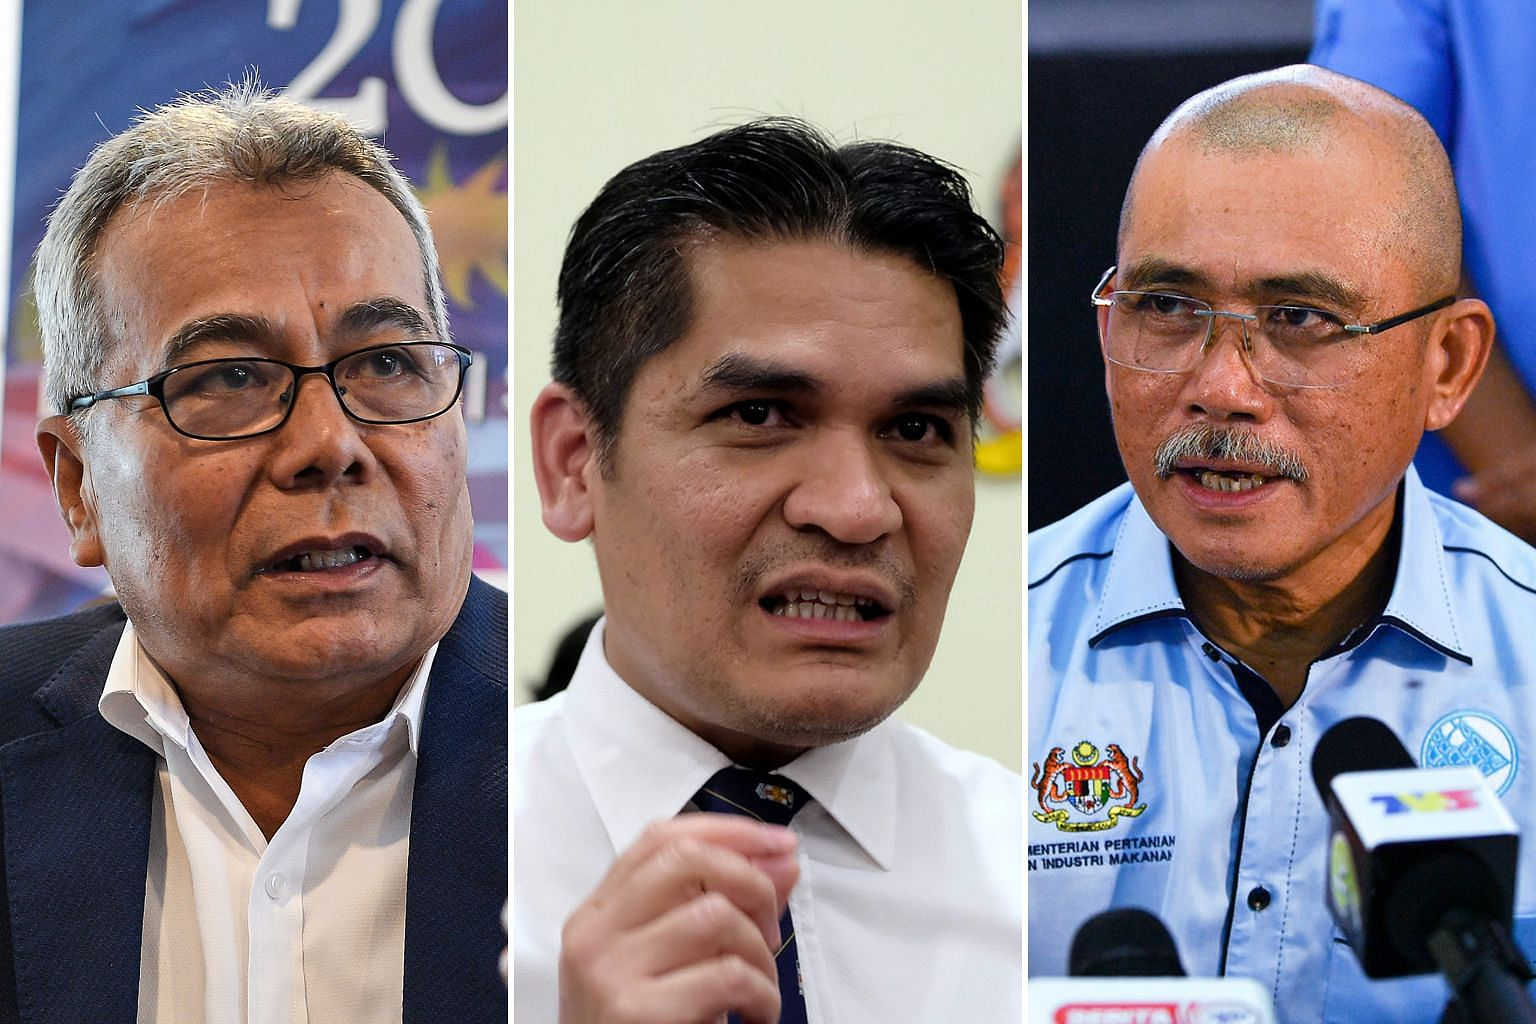 (Left, from top) Special Functions Minister Redzuan Yusof, Senior Minister for Education Radzi Jidin, and Agriculture and Food Industry Minister Ronald Kiandee are among seventeen candidates vying for three vice-president posts in Parti Pribumi Bersa